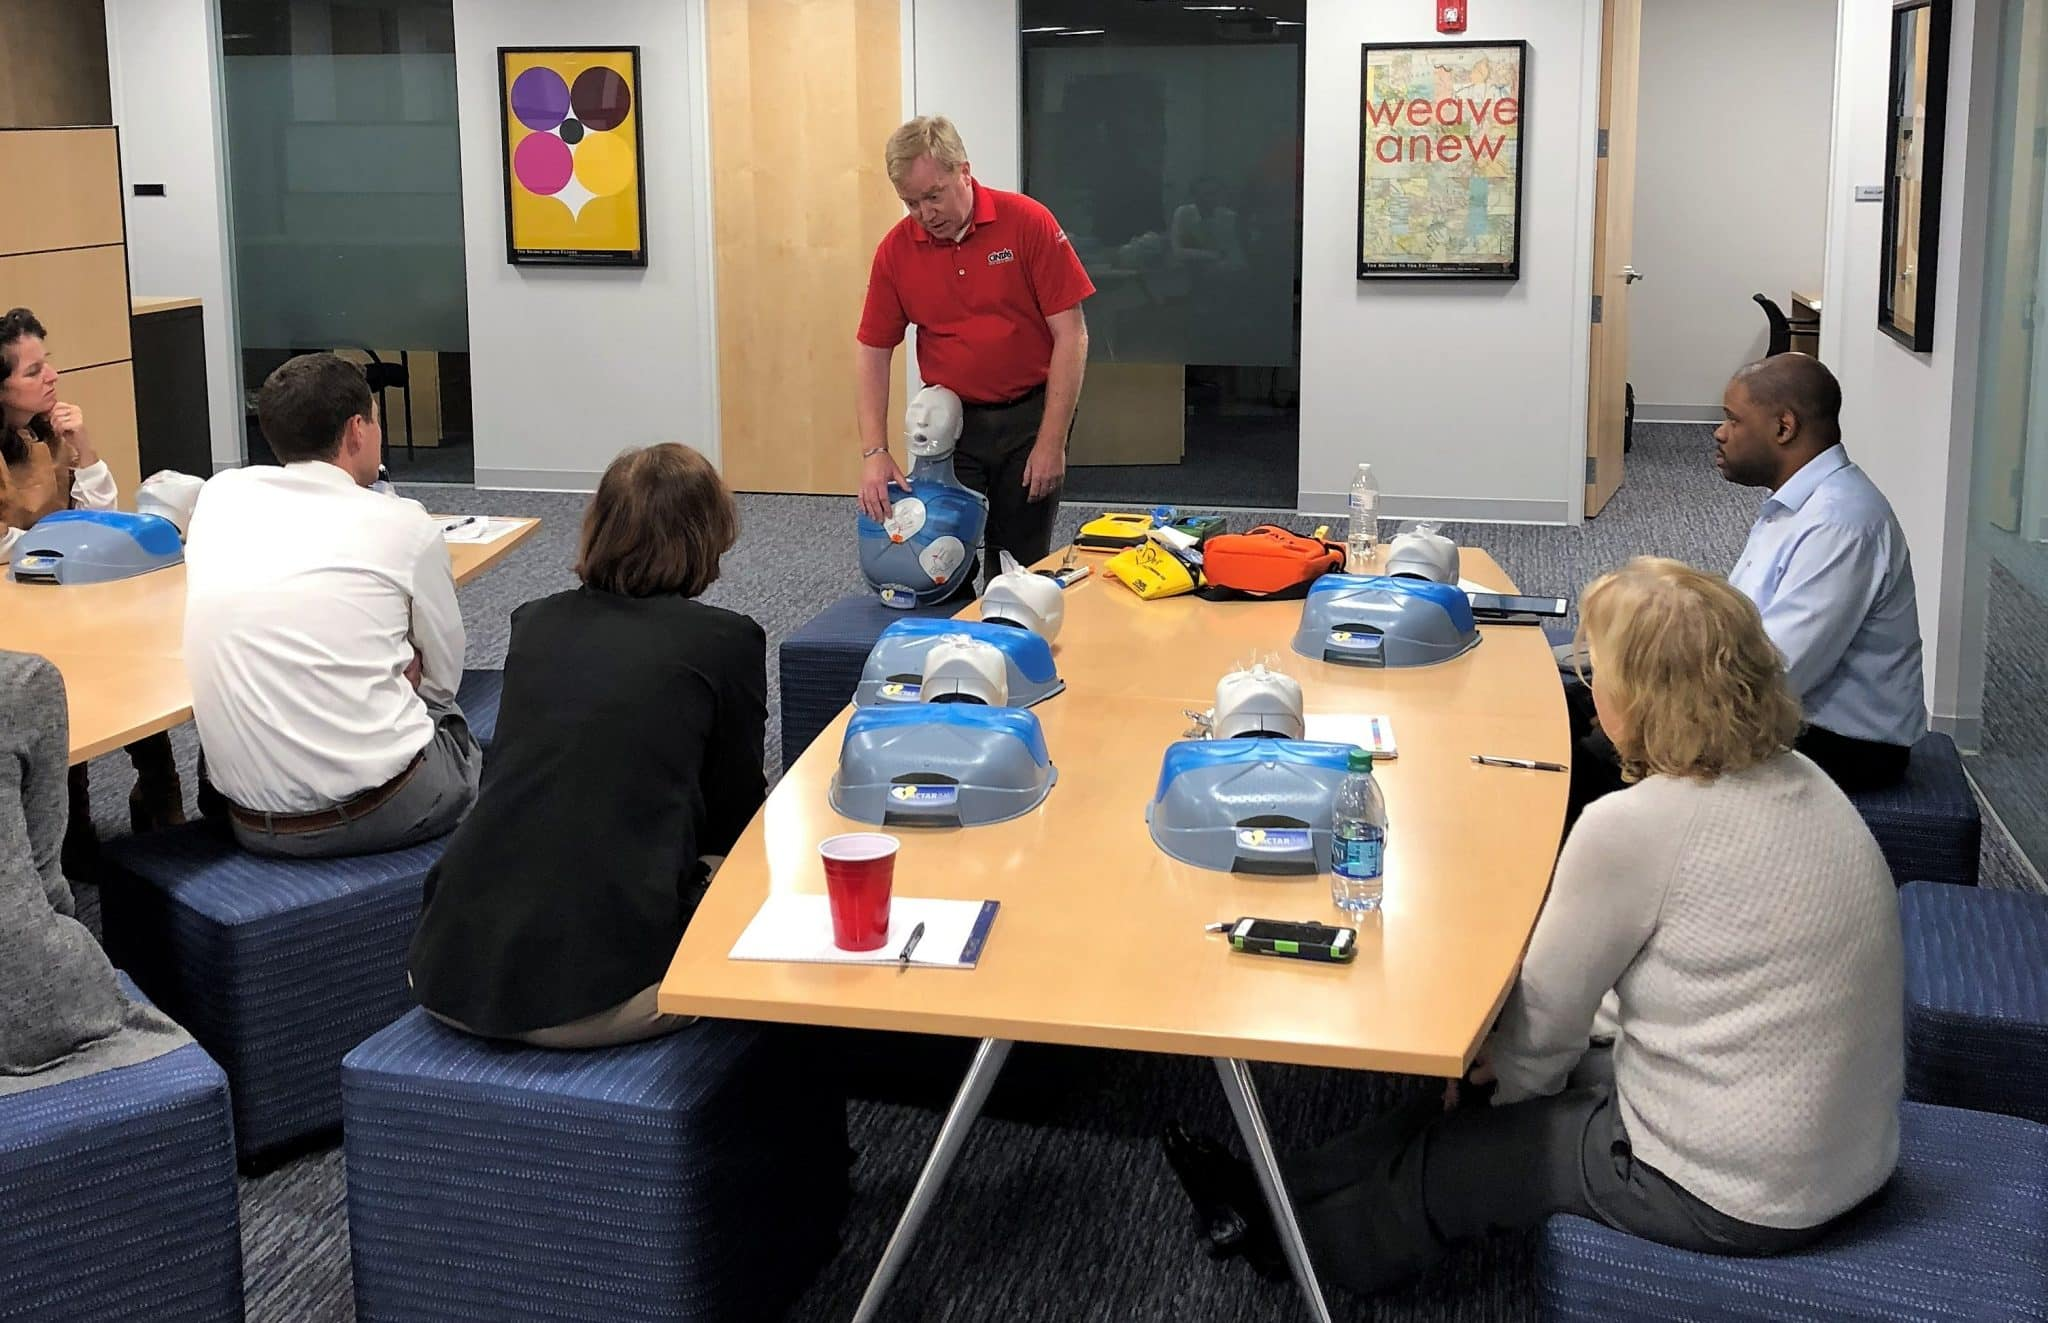 Safety First Adviser Investments Offers First Aid Cpr And Aed